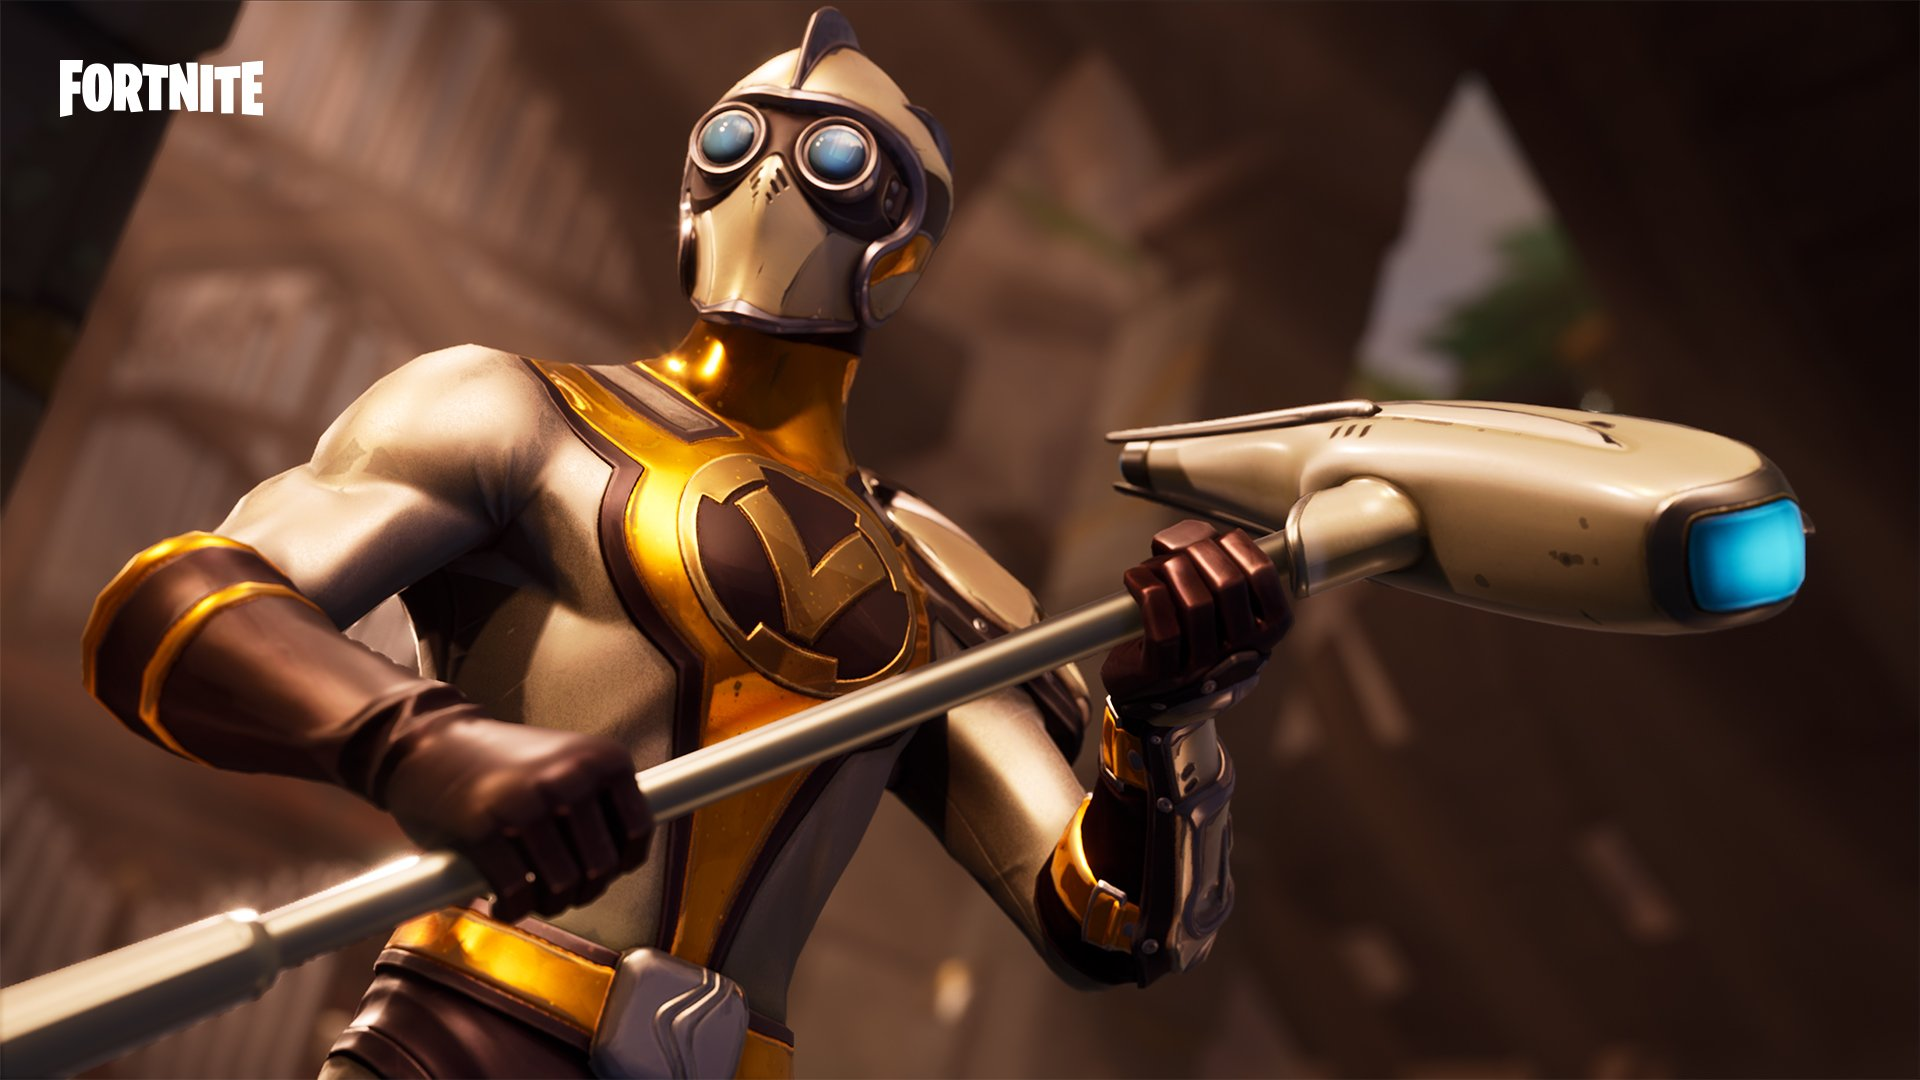 Bild Fortnite Venturion Skin Jpg Fortnite Wiki Fandom Powered